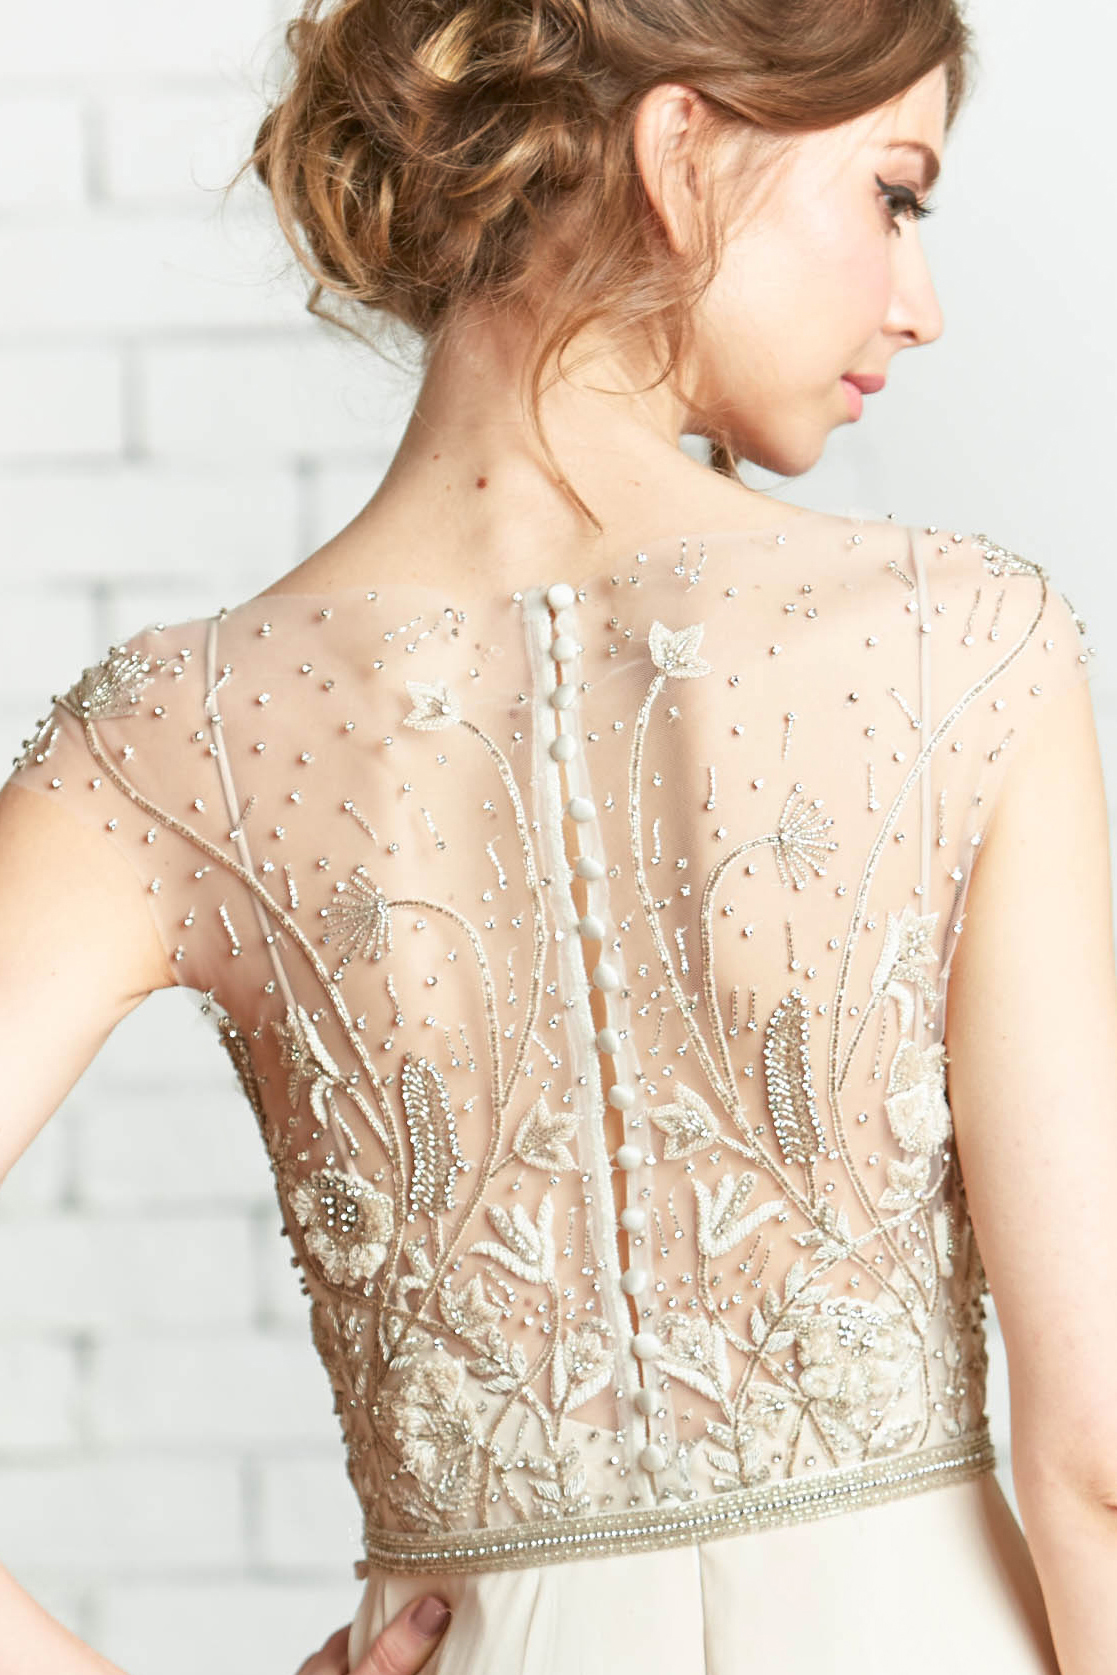 SterlingTop-2Back_Beaded_Crystals_Embroidery_Floral_Design_Wedding_Separates.jpg